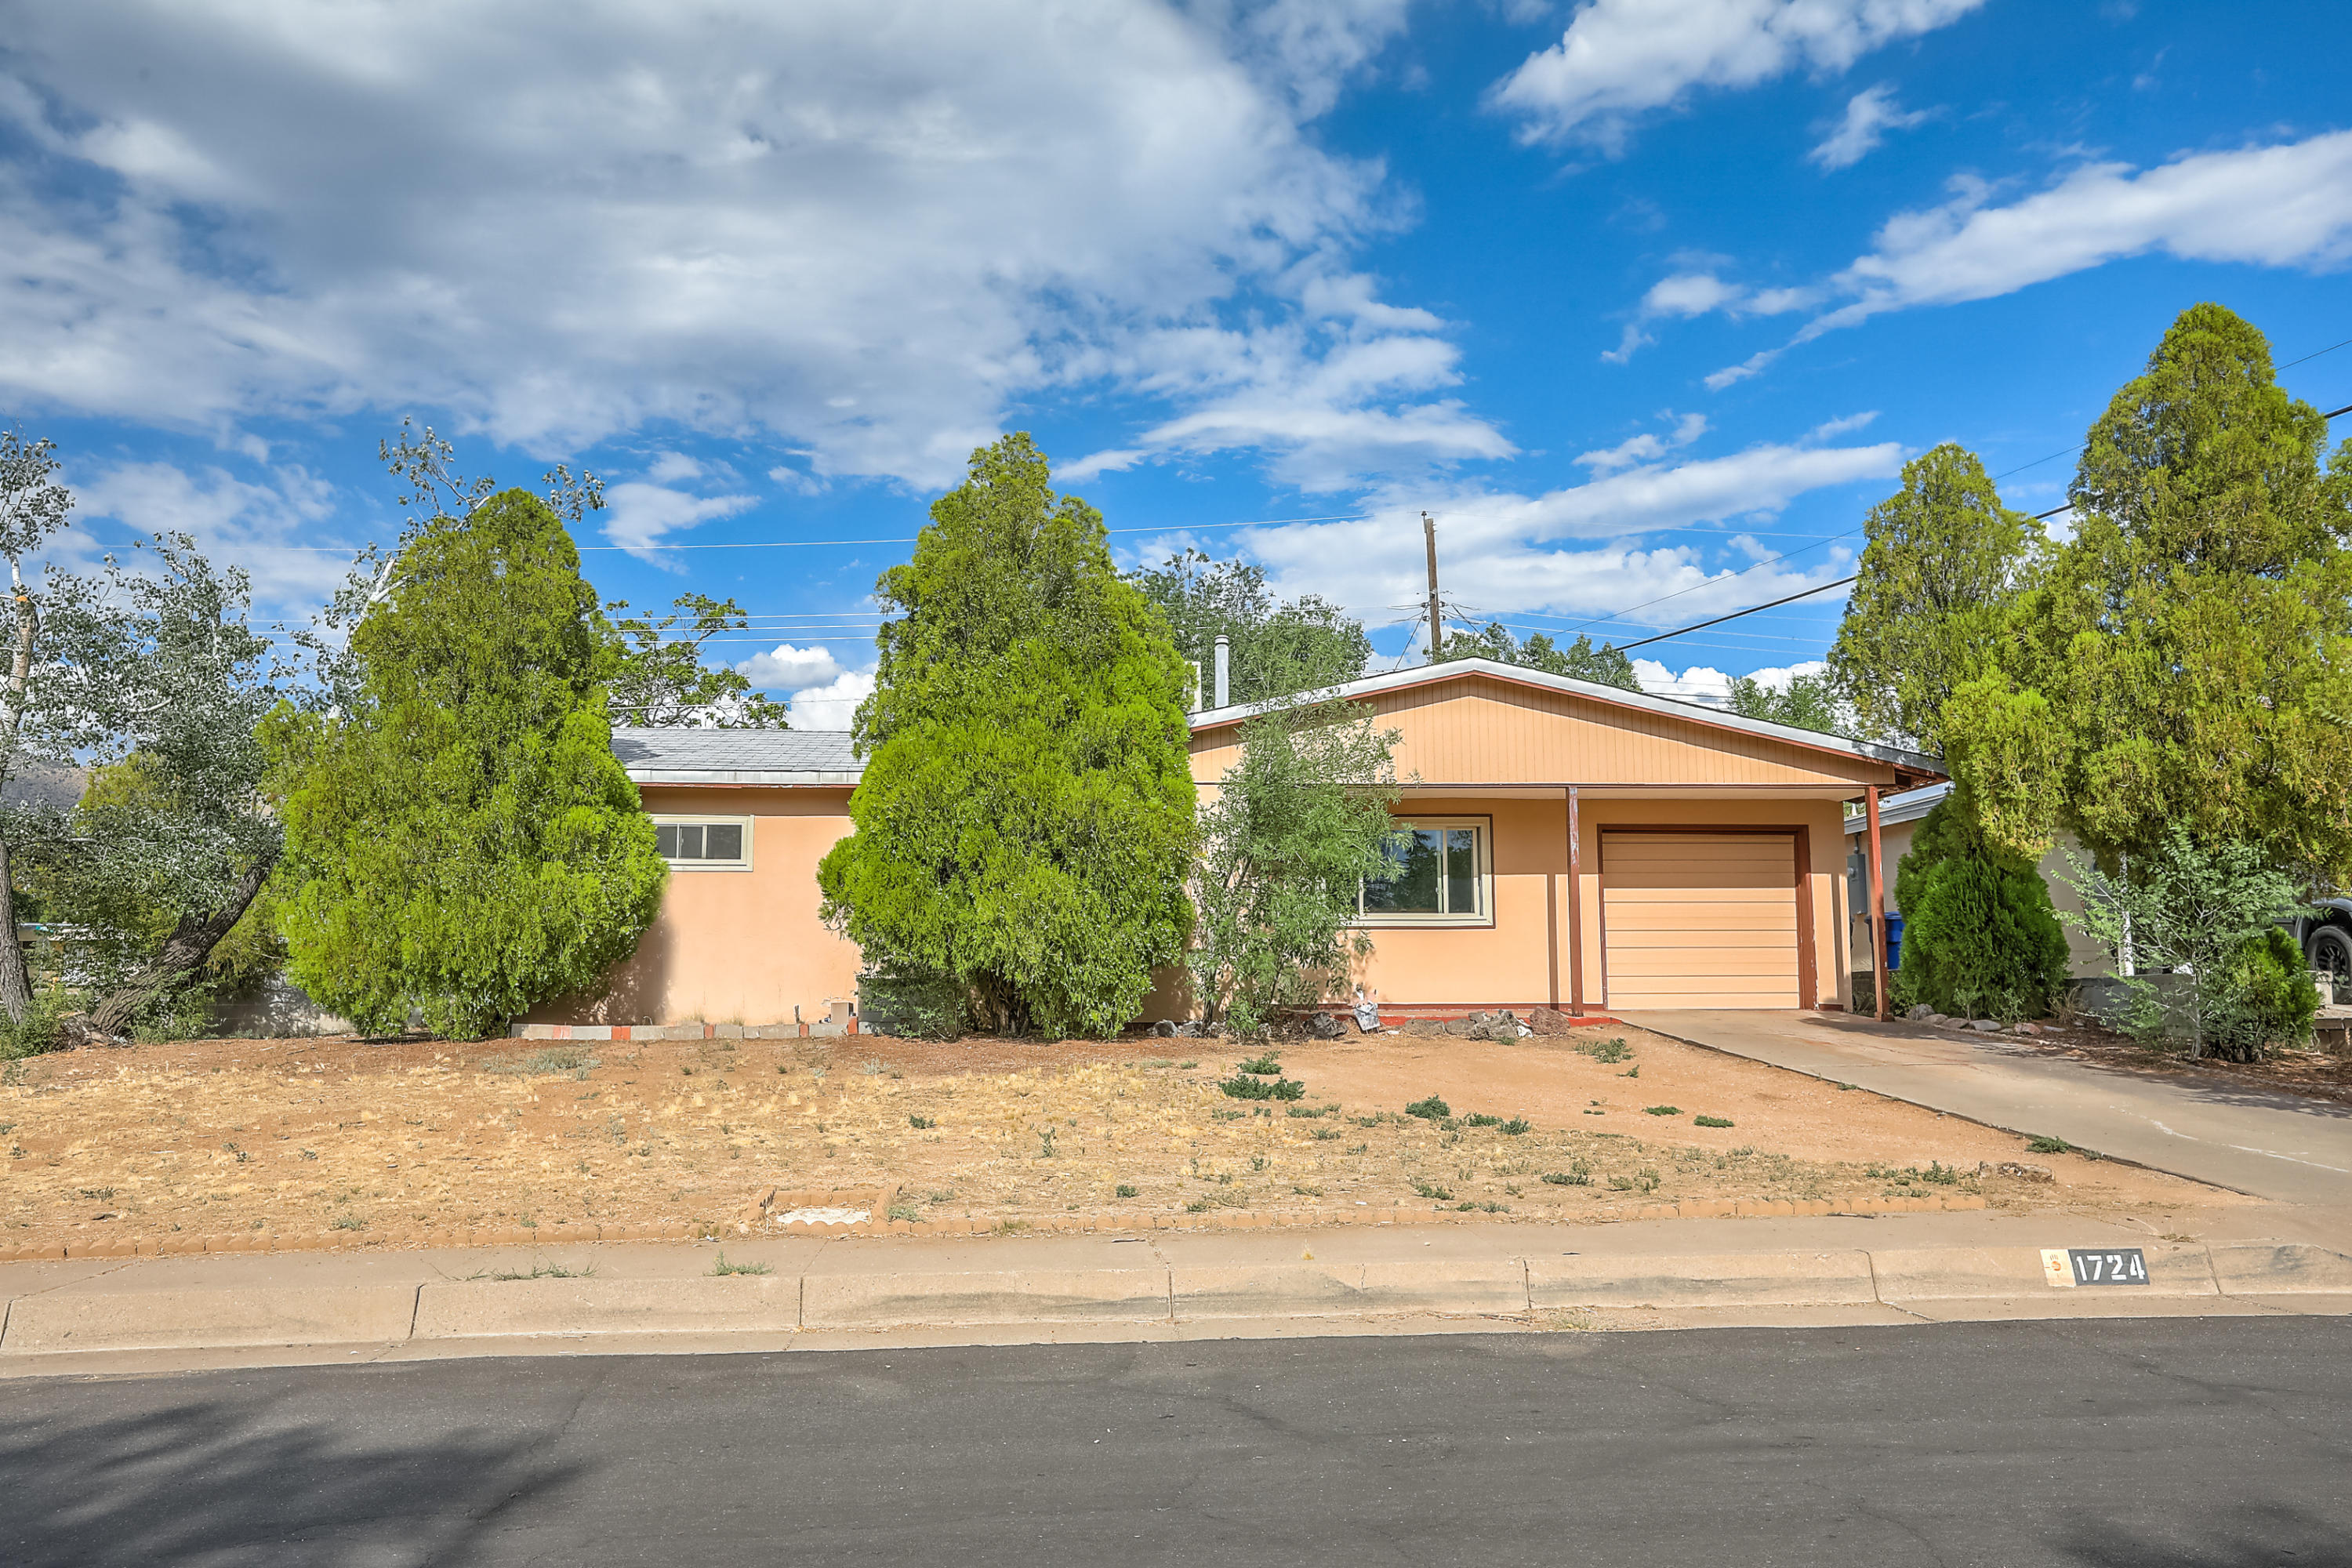 1724 JUNE Street NE Property Photo - Albuquerque, NM real estate listing